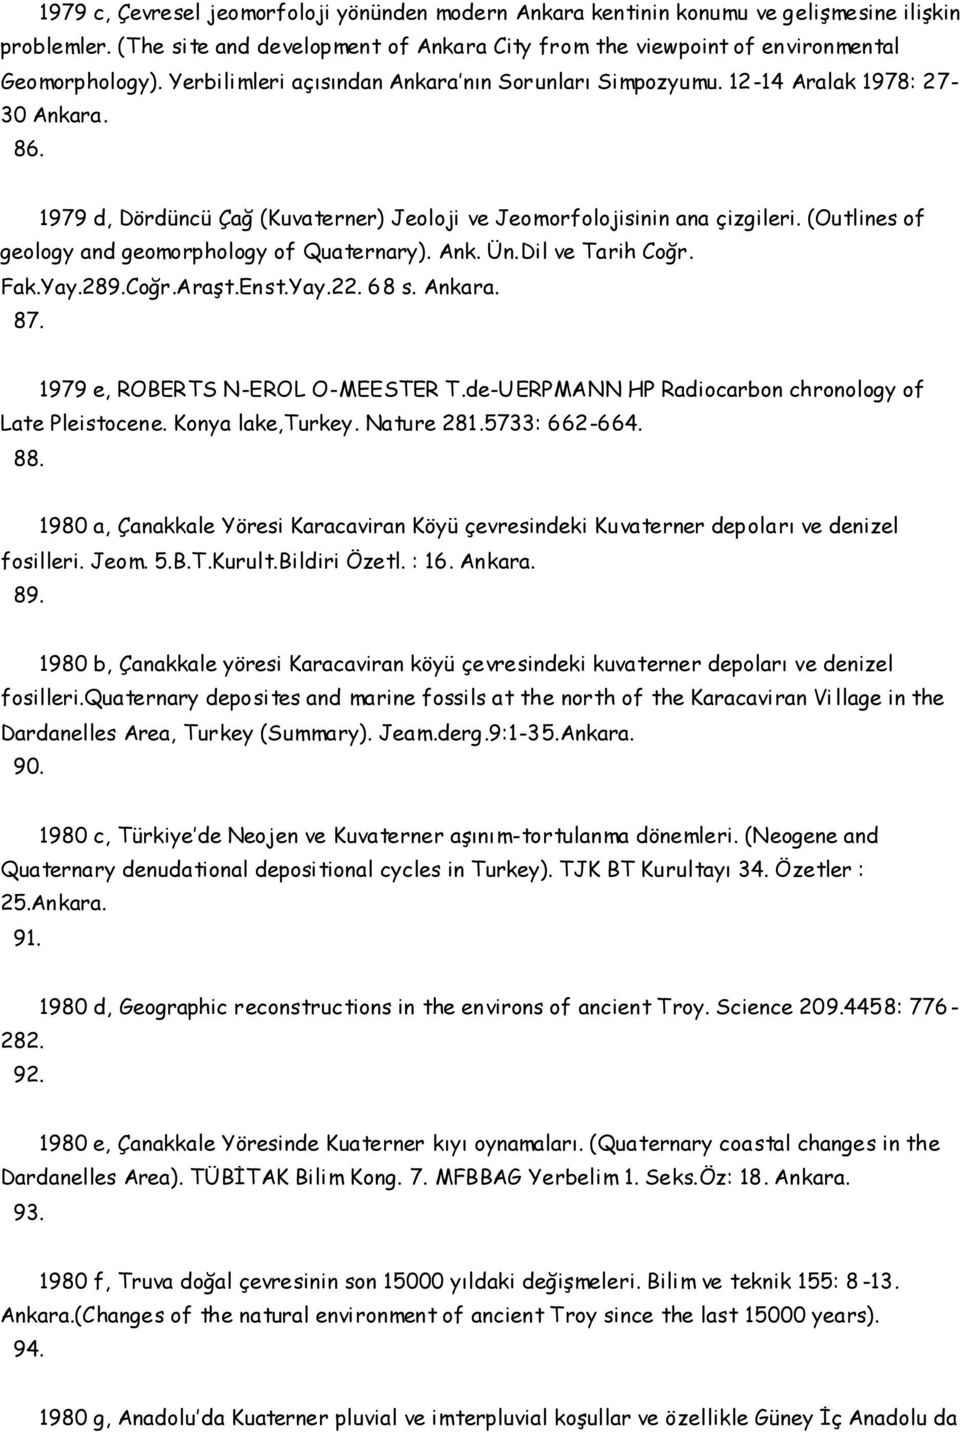 (Outlines of geology and geomorphology of Quaternary). Ank. Ün.Dil ve Tarih Coğr. Fak.Yay.289.Coğr.Araşt.Enst.Yay.22. 68 s. Ankara. 87. 1979 e, ROBERTS N-EROL O-MEESTER T.